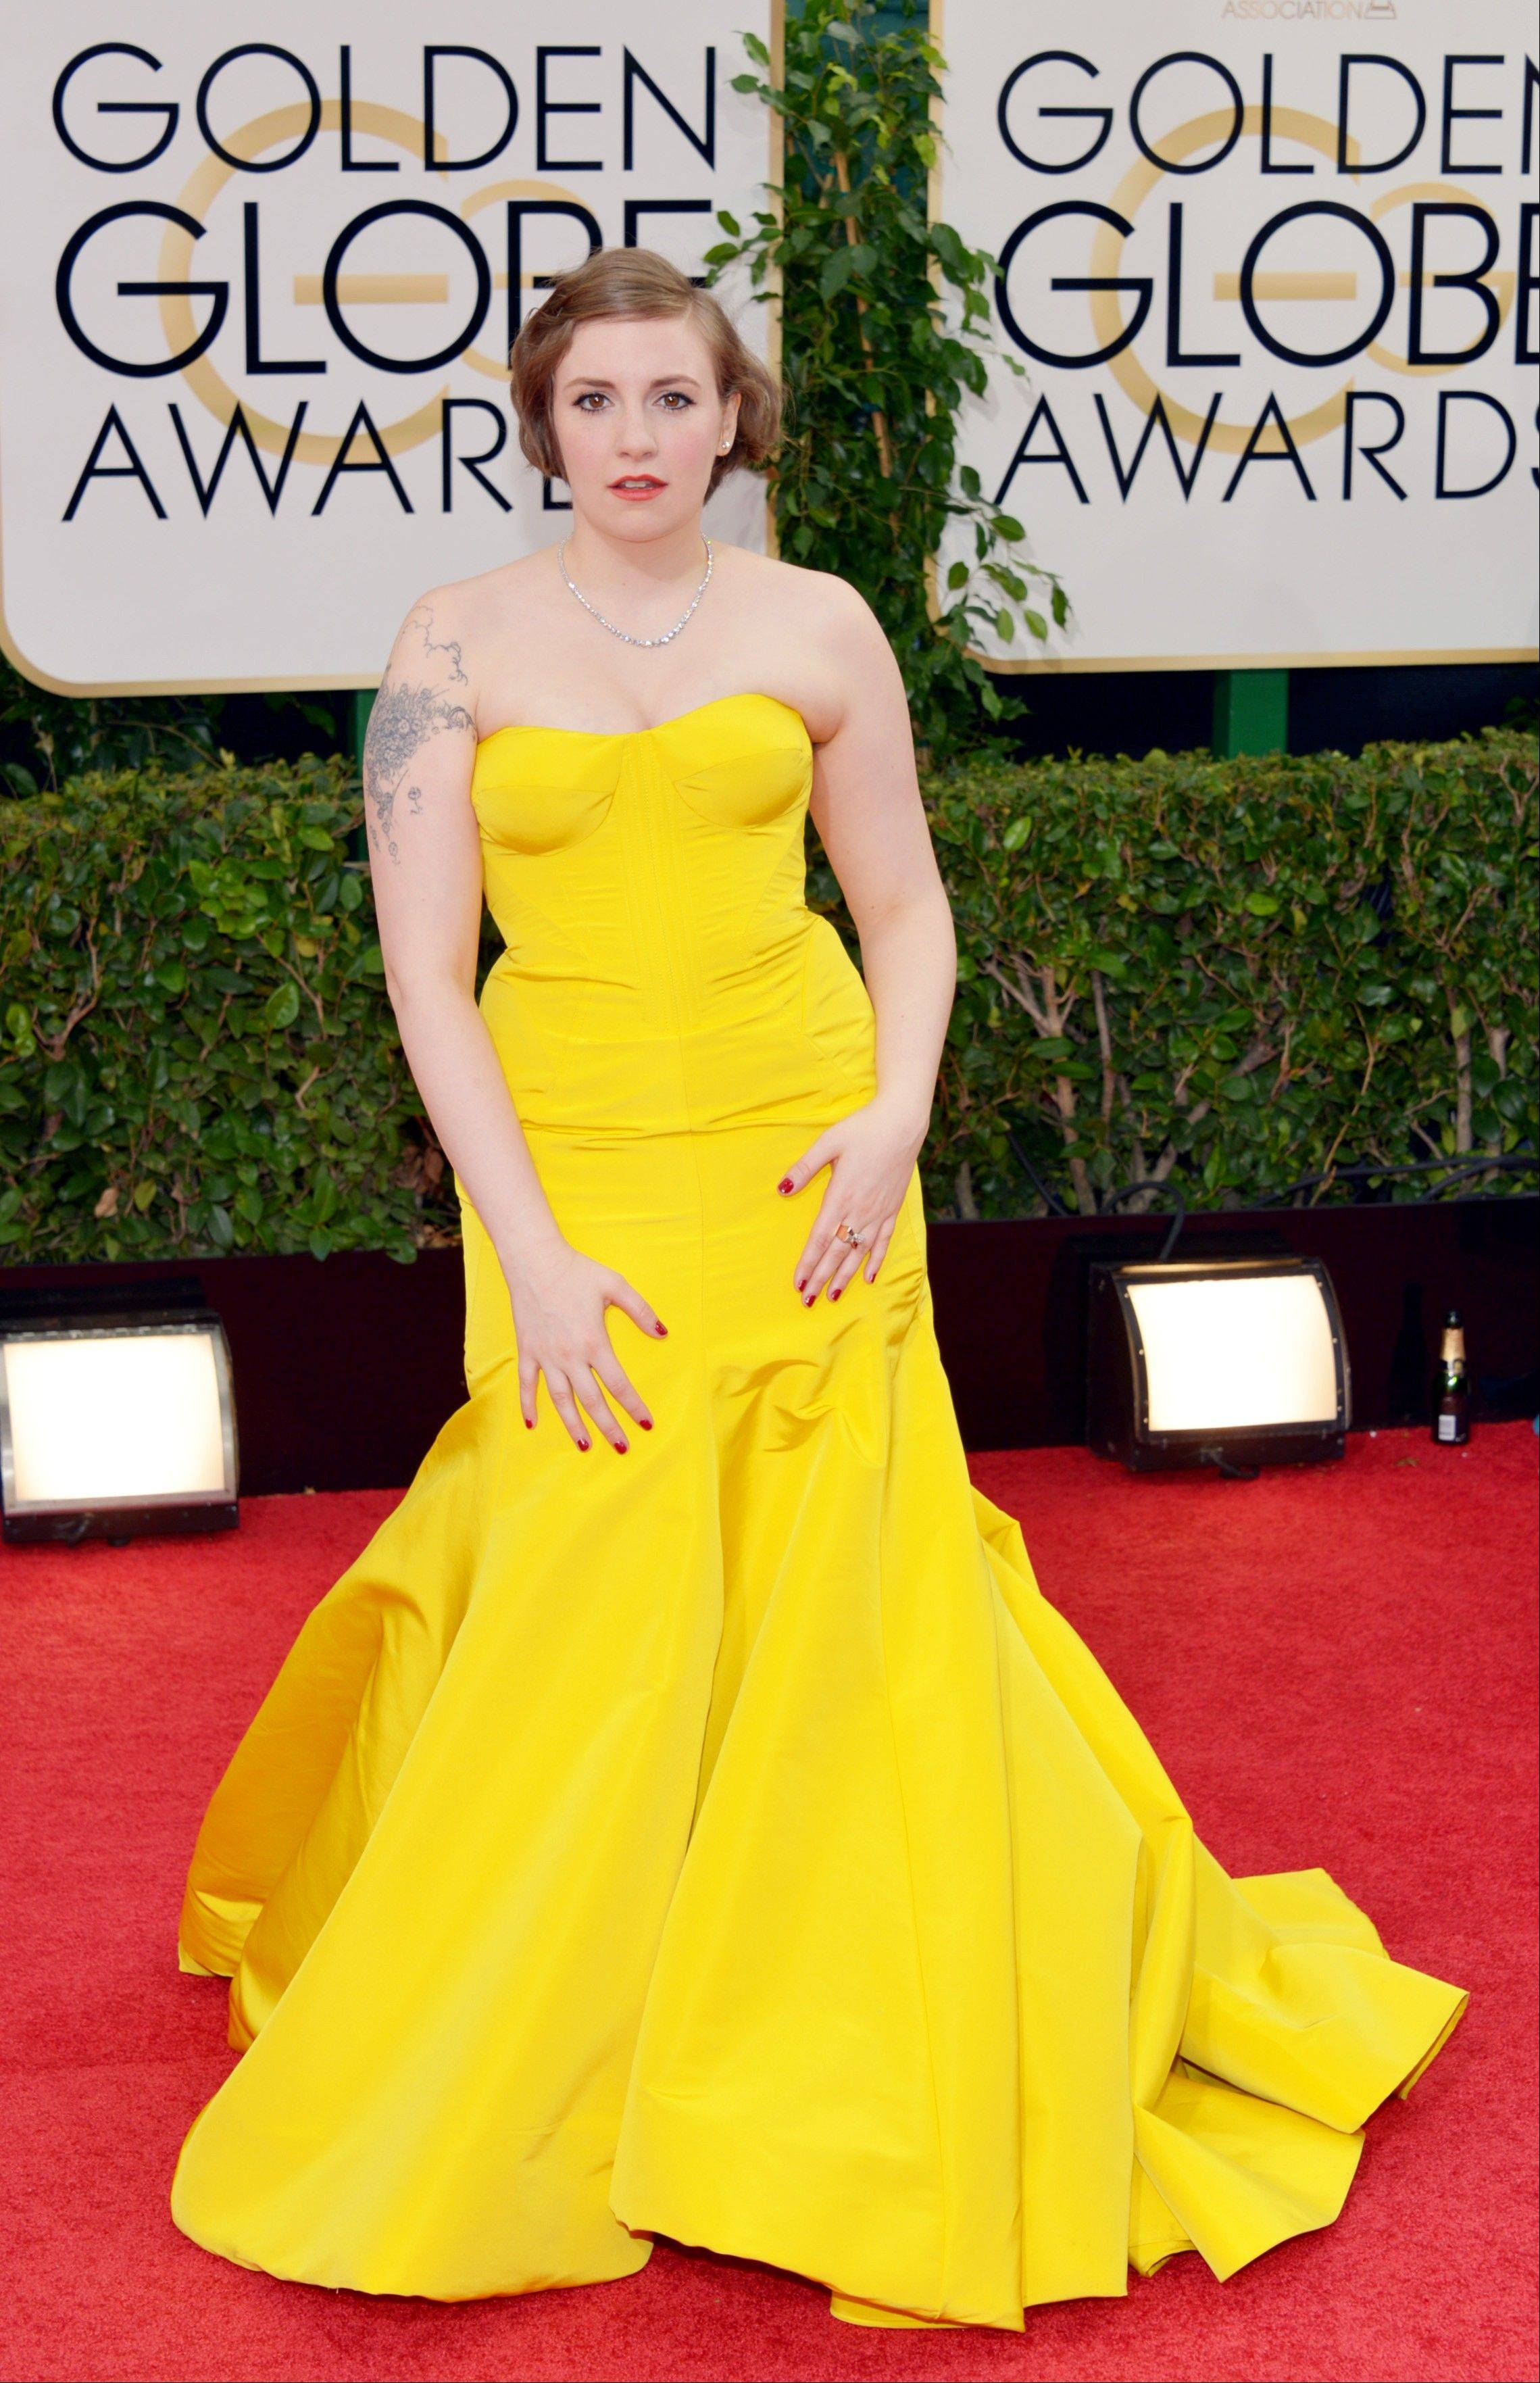 Lena Dunham got everyone's attention at the Golden Globes in a bright yellow Zac Posen dress.